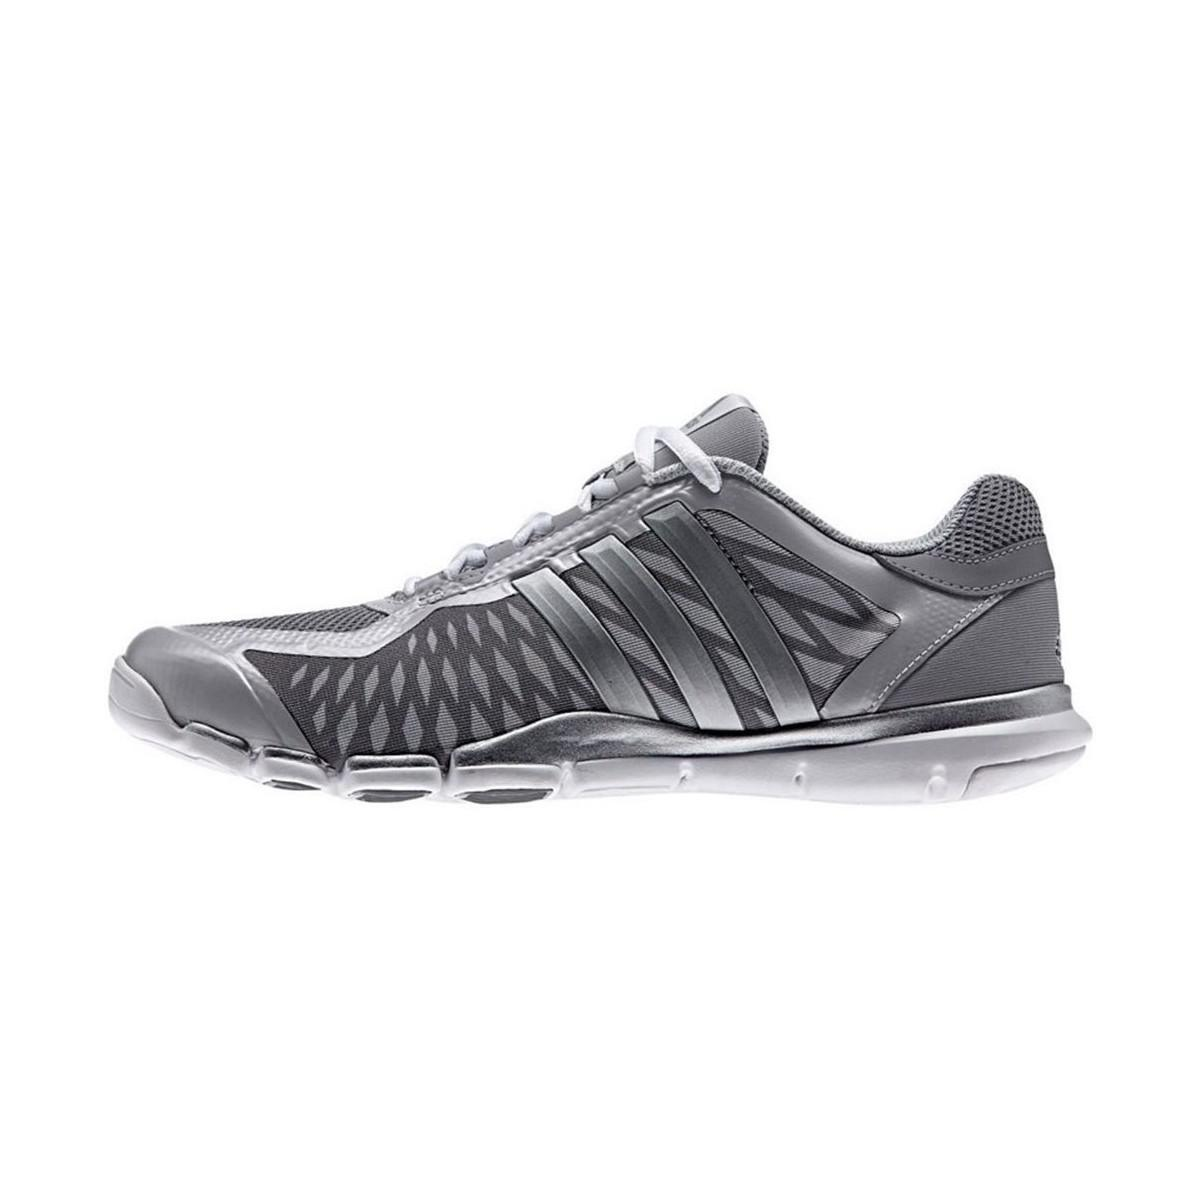 d0ad6ec0657 Adidas Adipure 360 Control Women s Running Trainers In Silver in ...